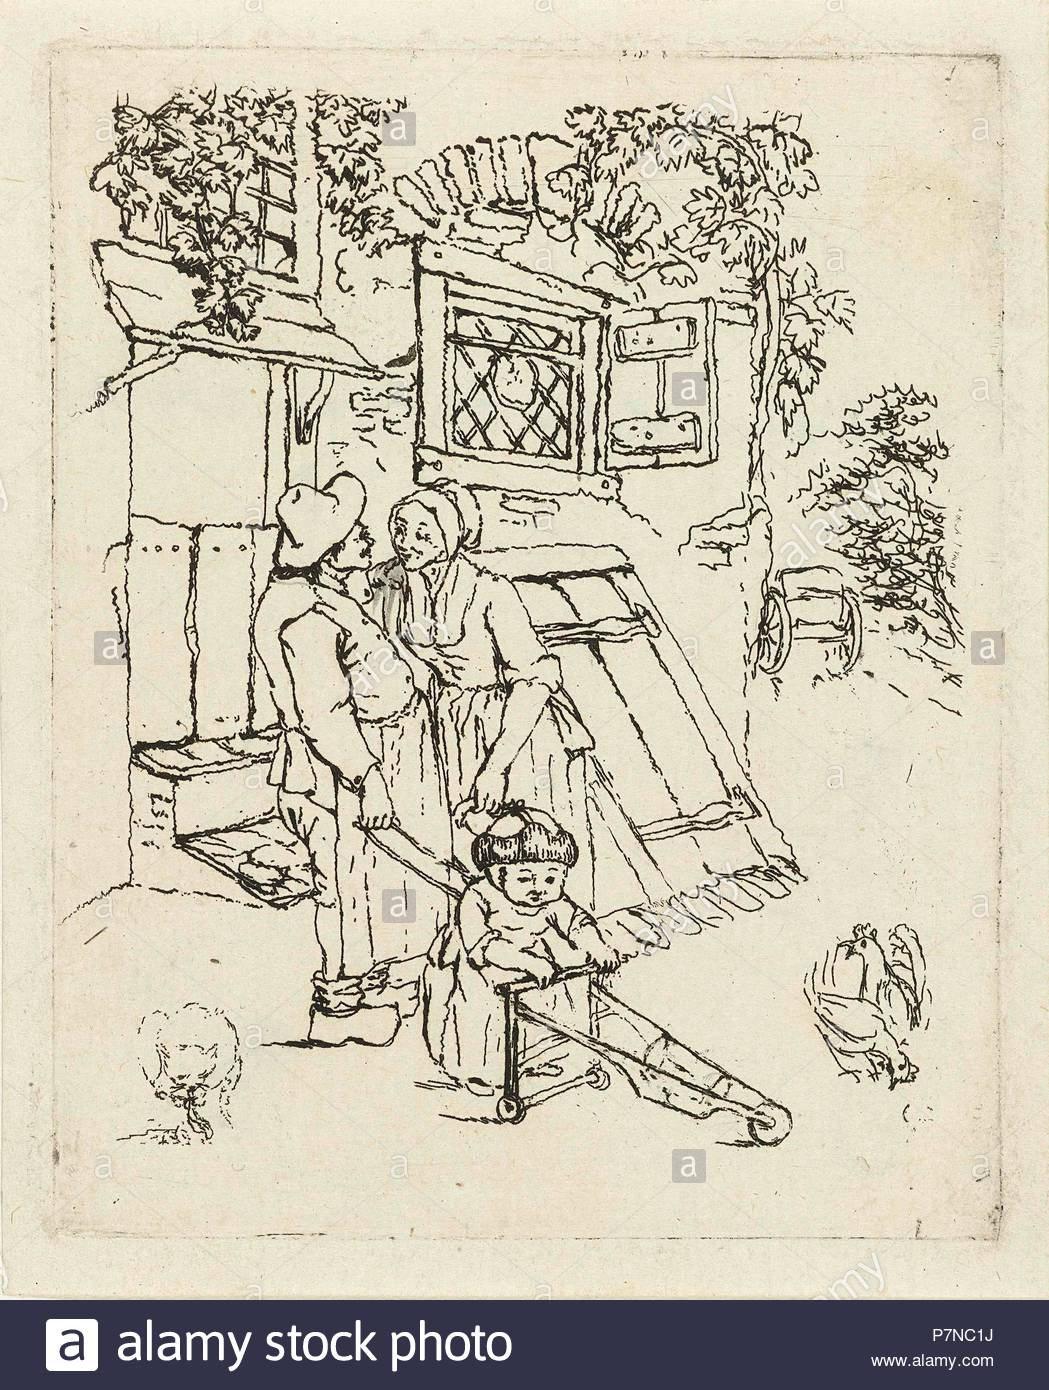 Farmer and his wife with child for a house, Marie Lambertine Coclers, 1776 - 1815. - Stock Image